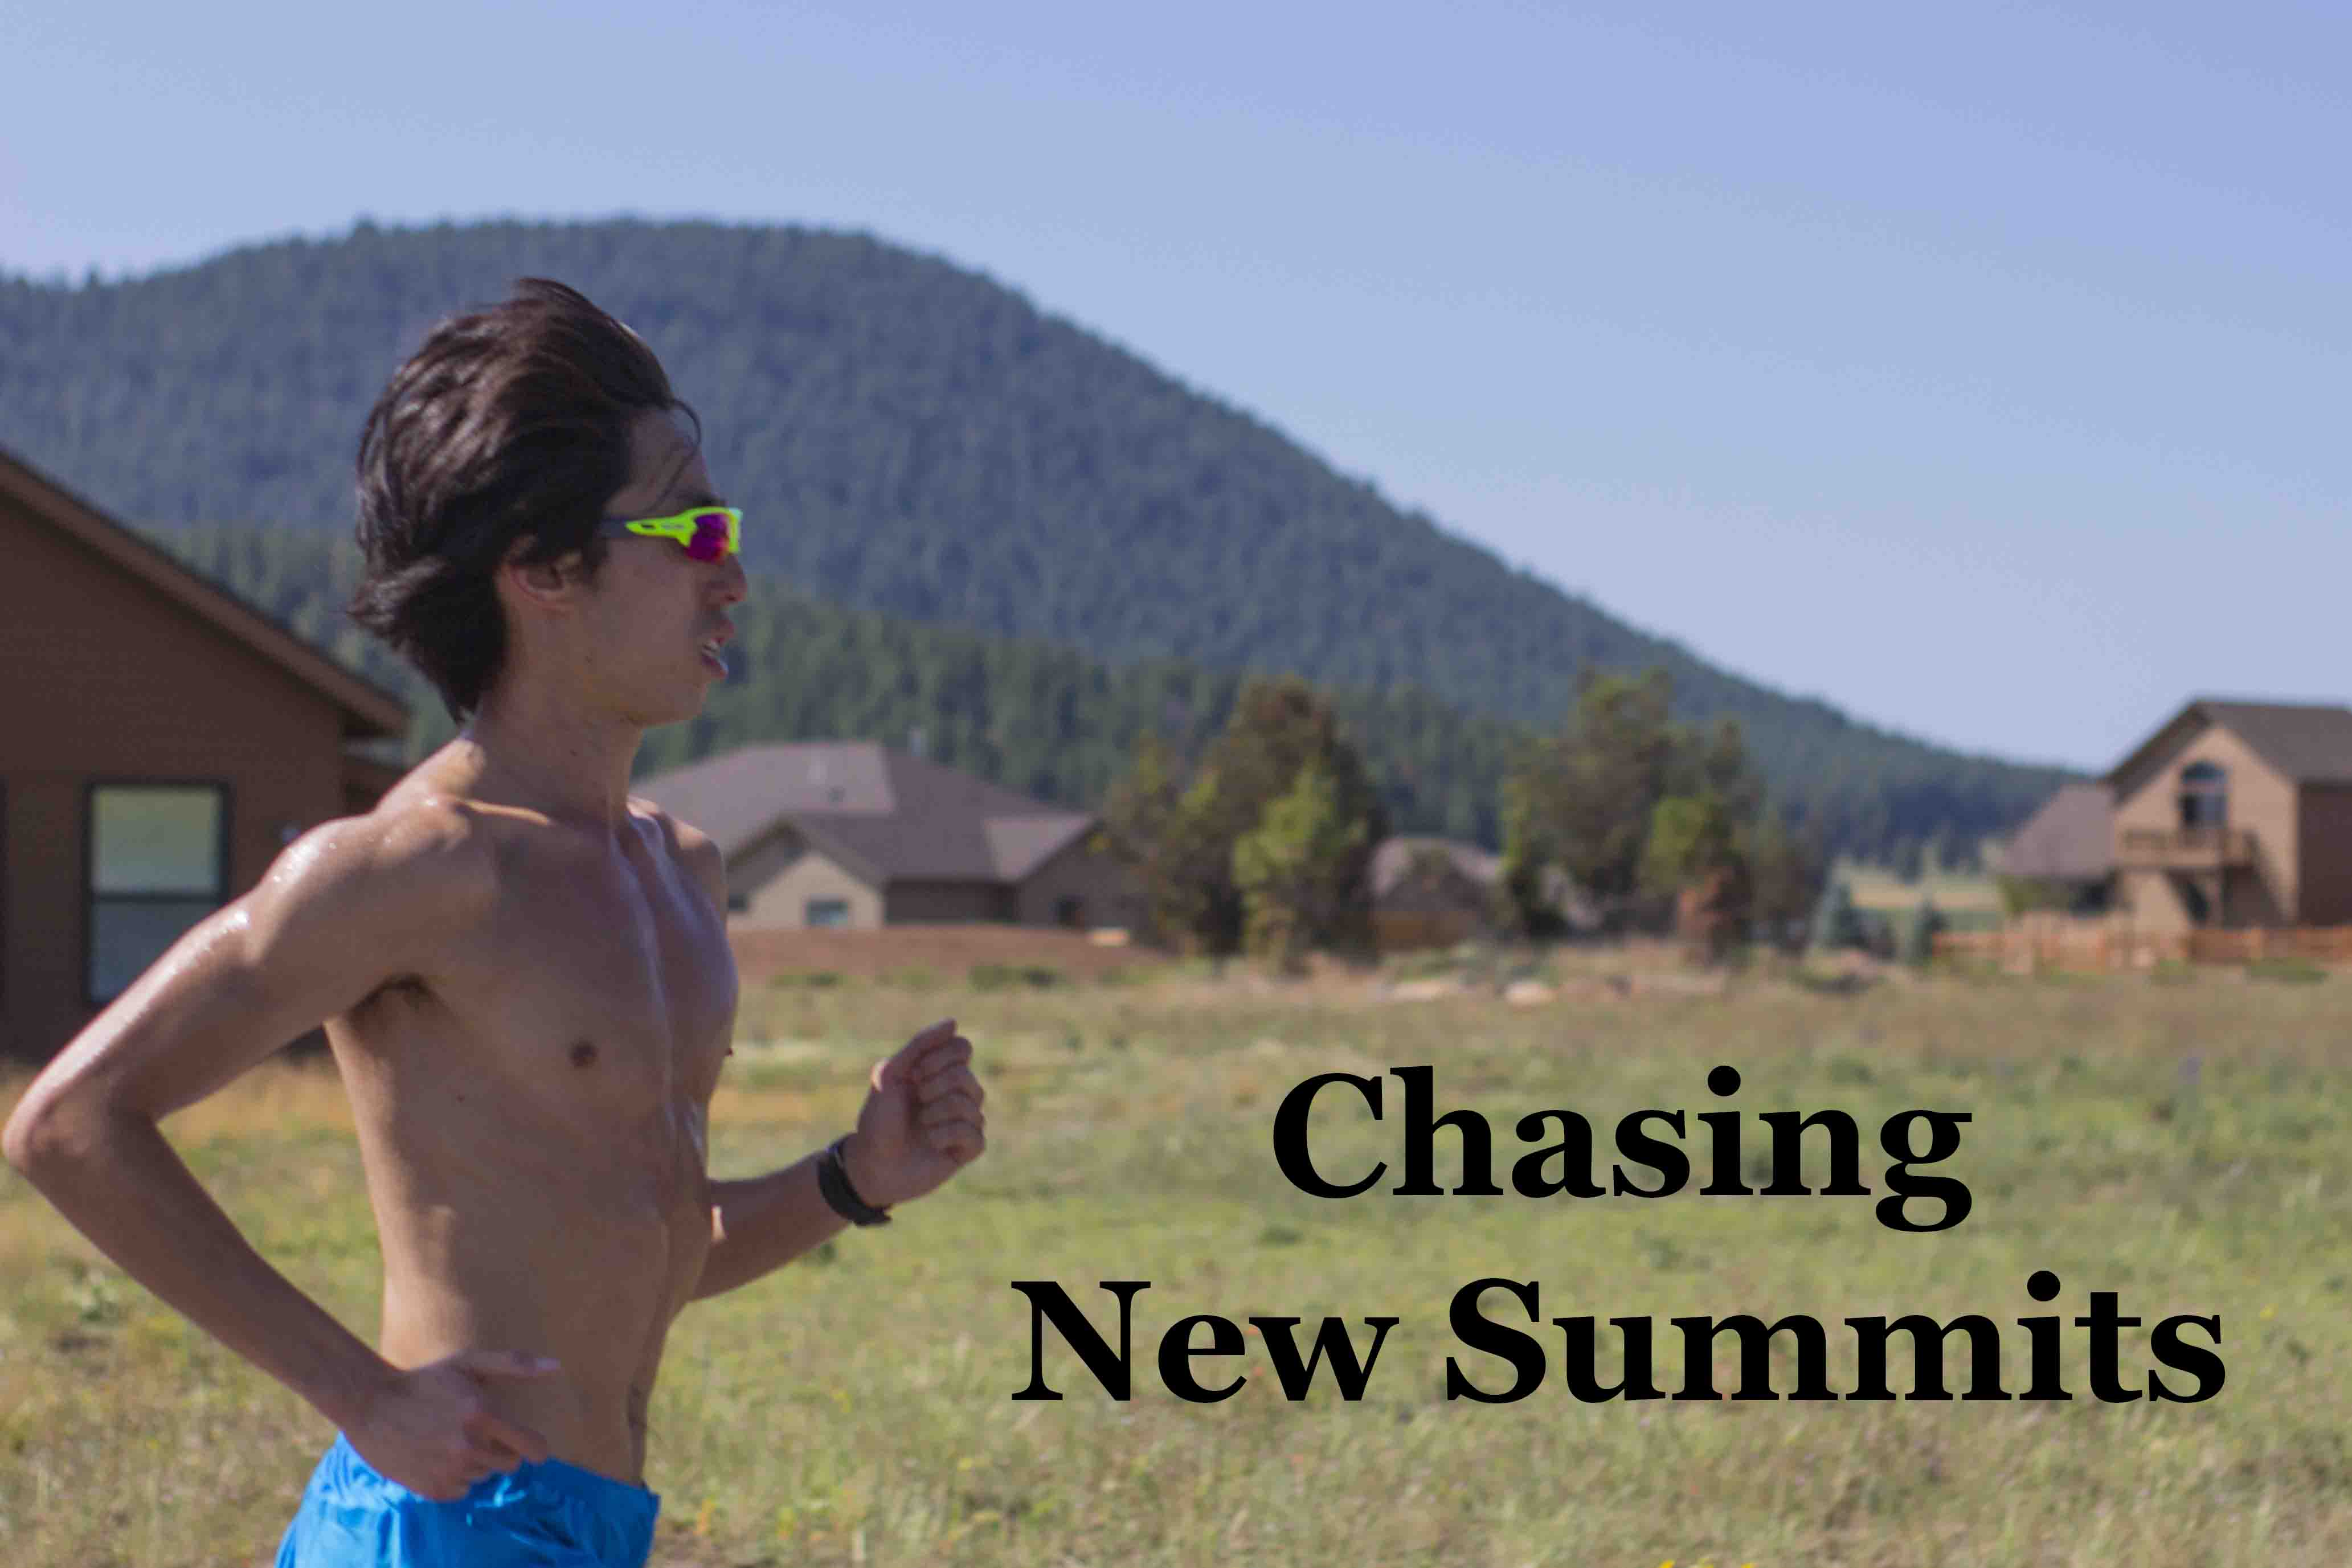 Introducing: Chasing New Summits, a series